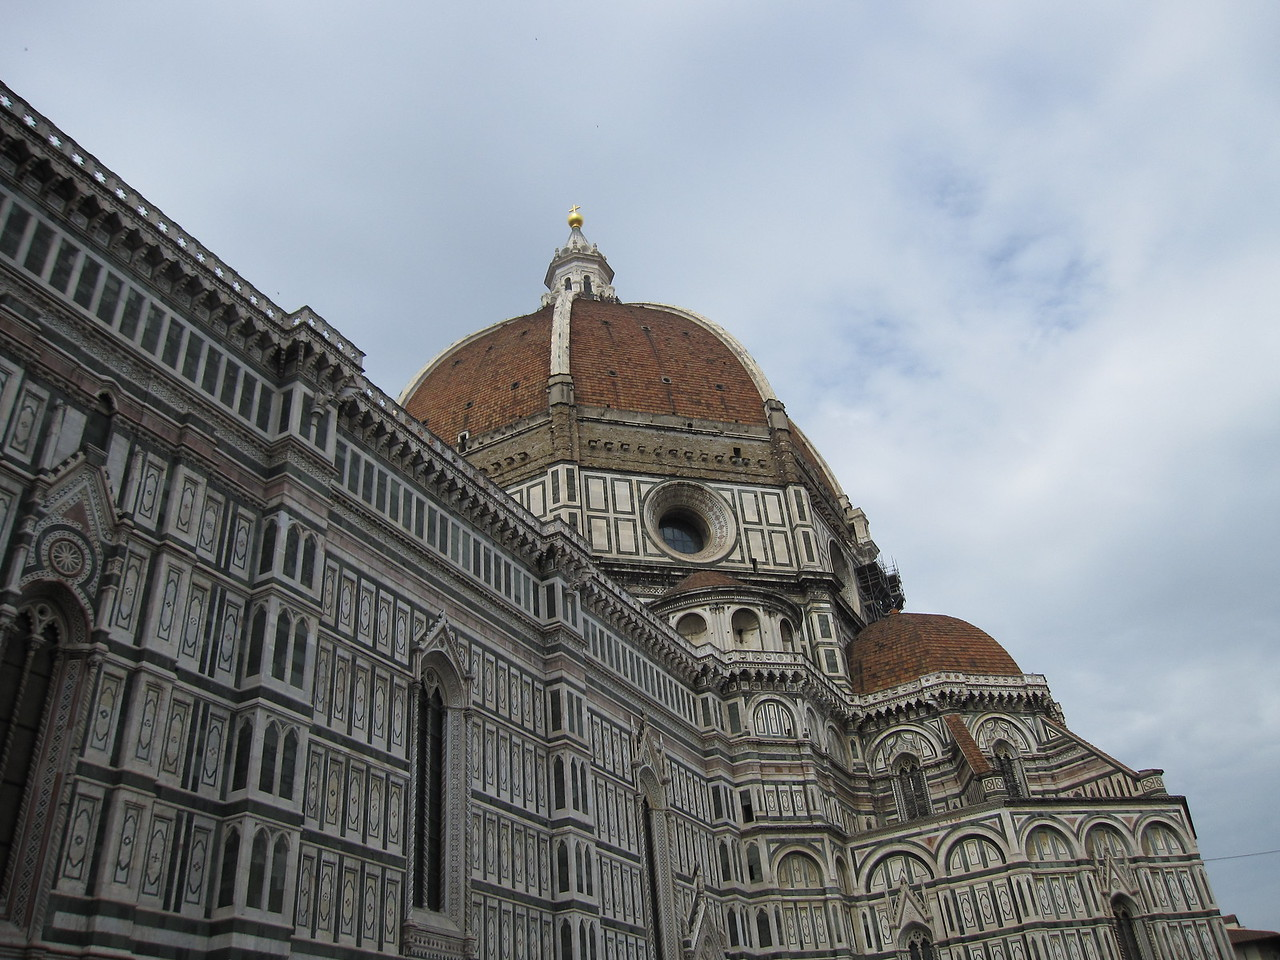 The Dome of Florence Cathedral in Florence, Italy